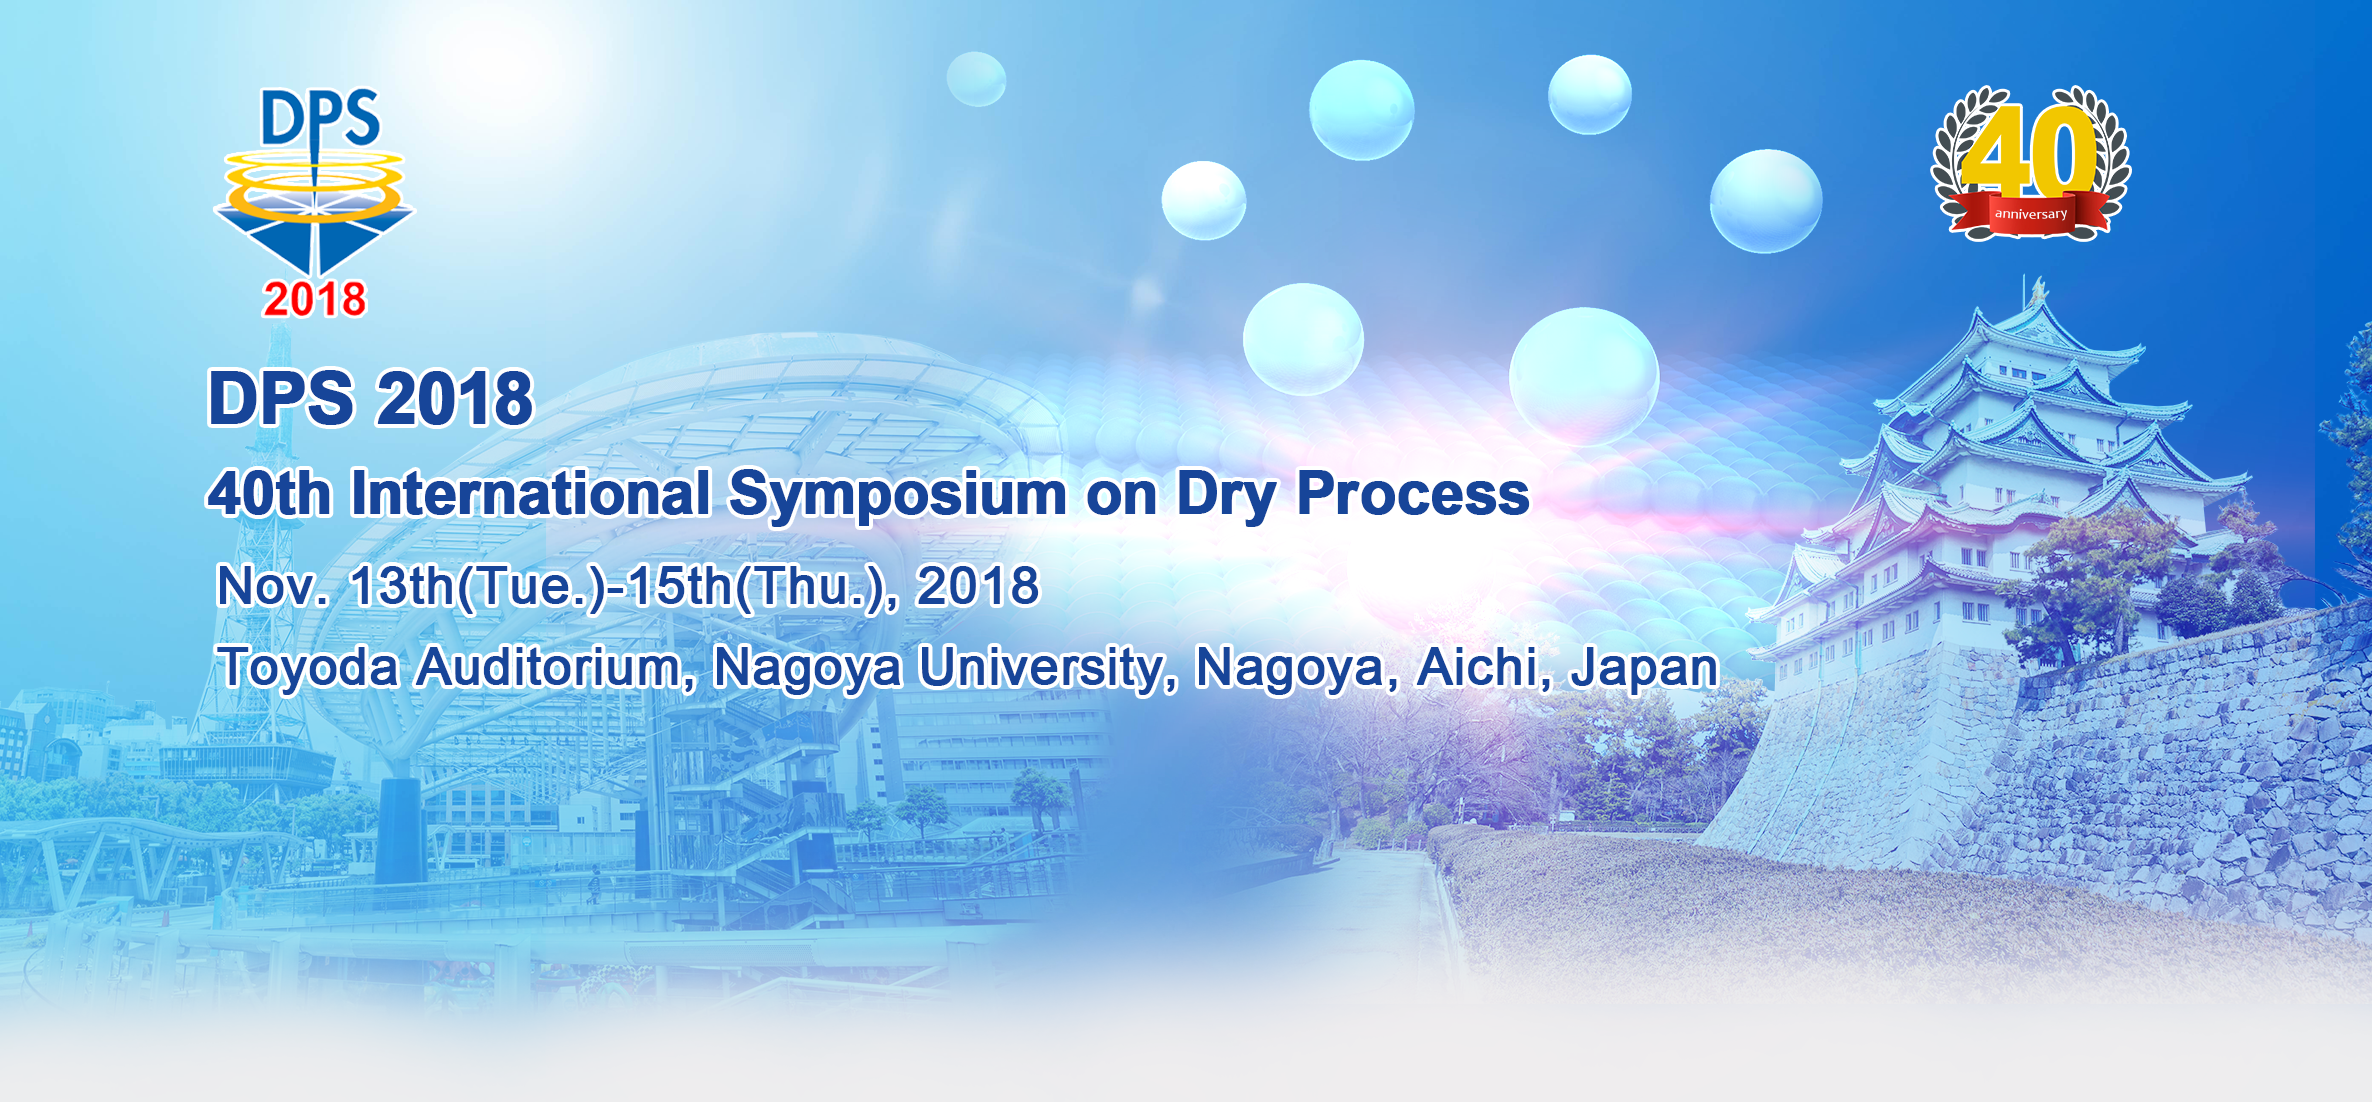 top dps 2018 40th international symposium on dry process